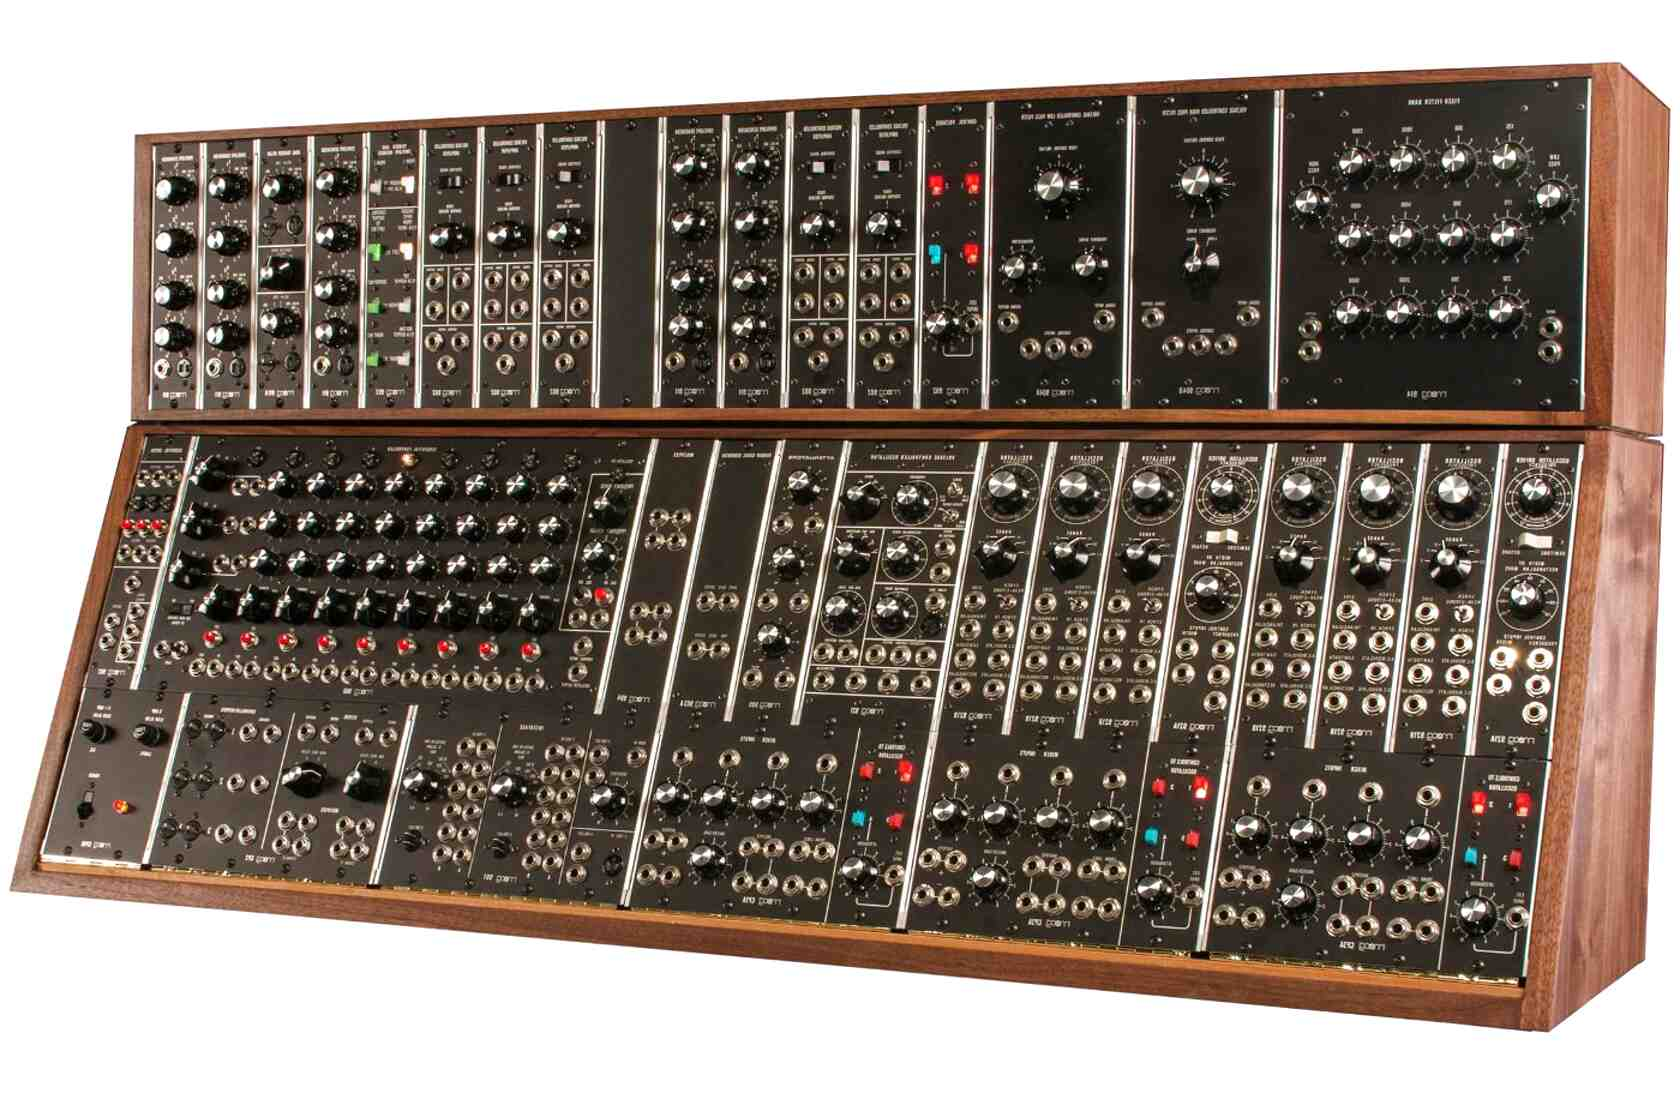 moog modular synthesizer for sale